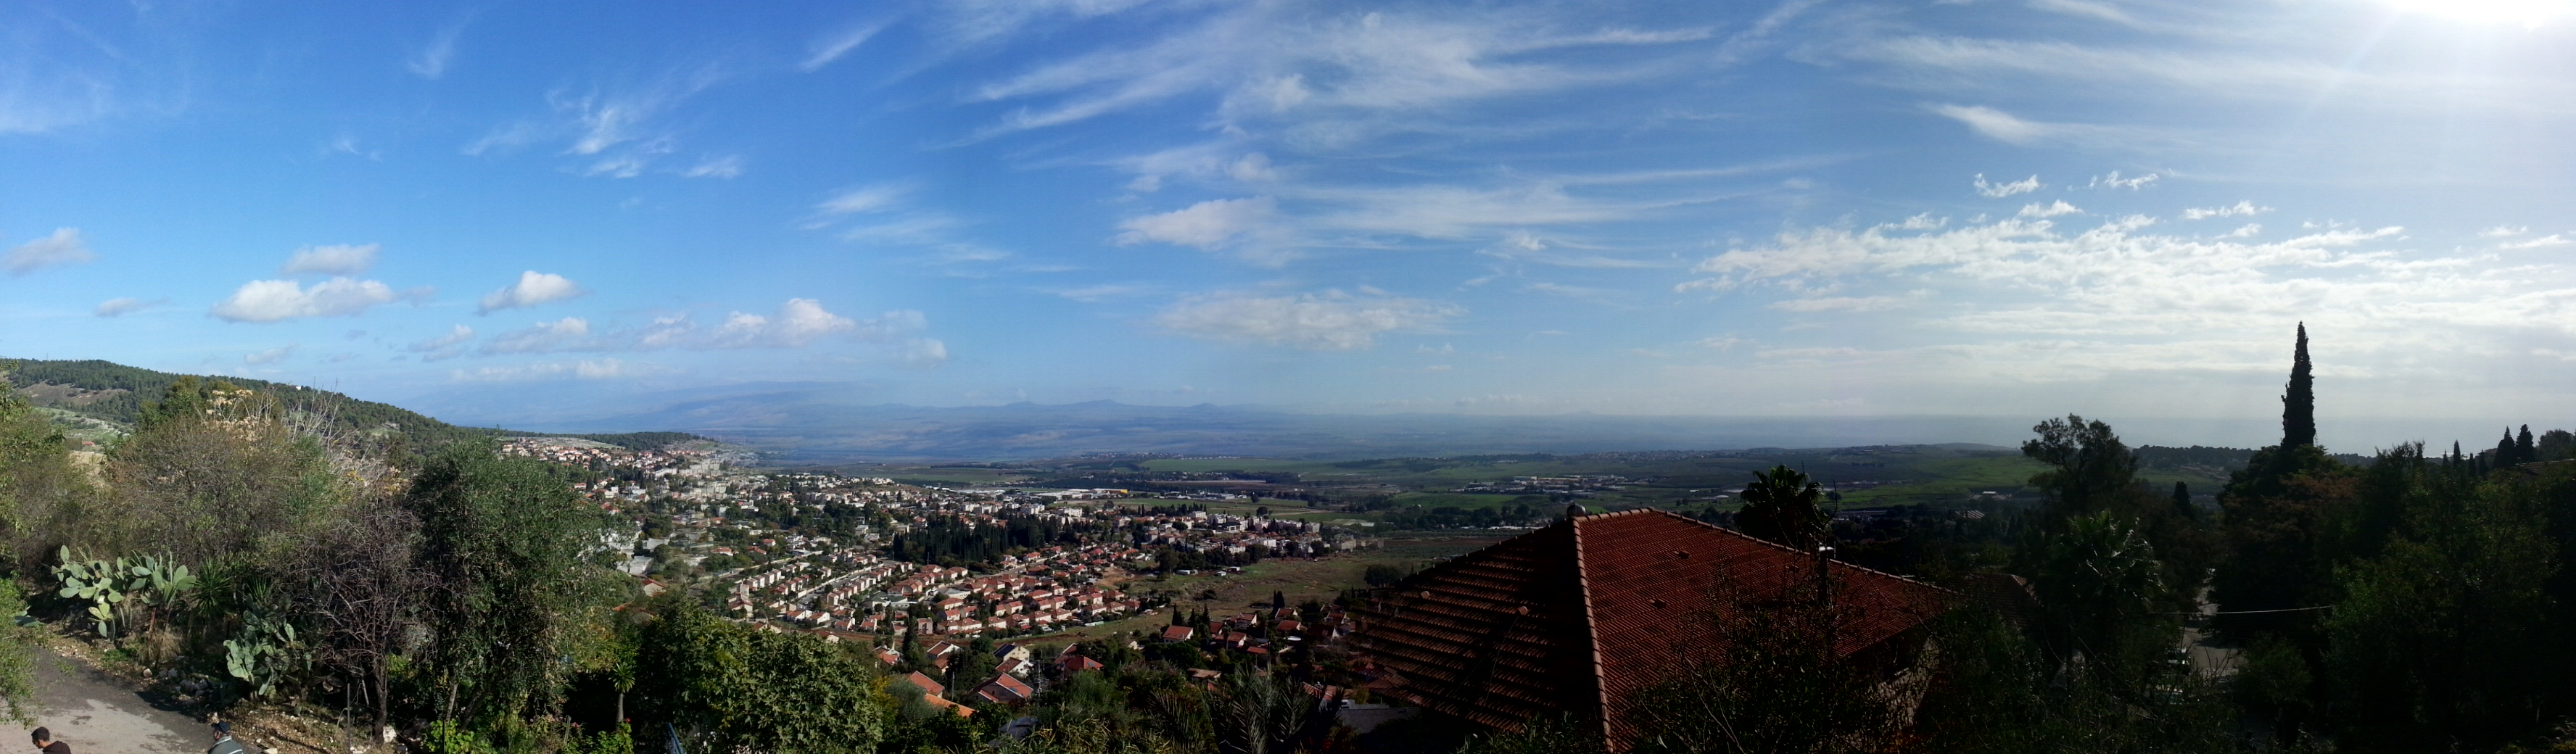 View over Rosh Pina from Mitzpe Nimrod